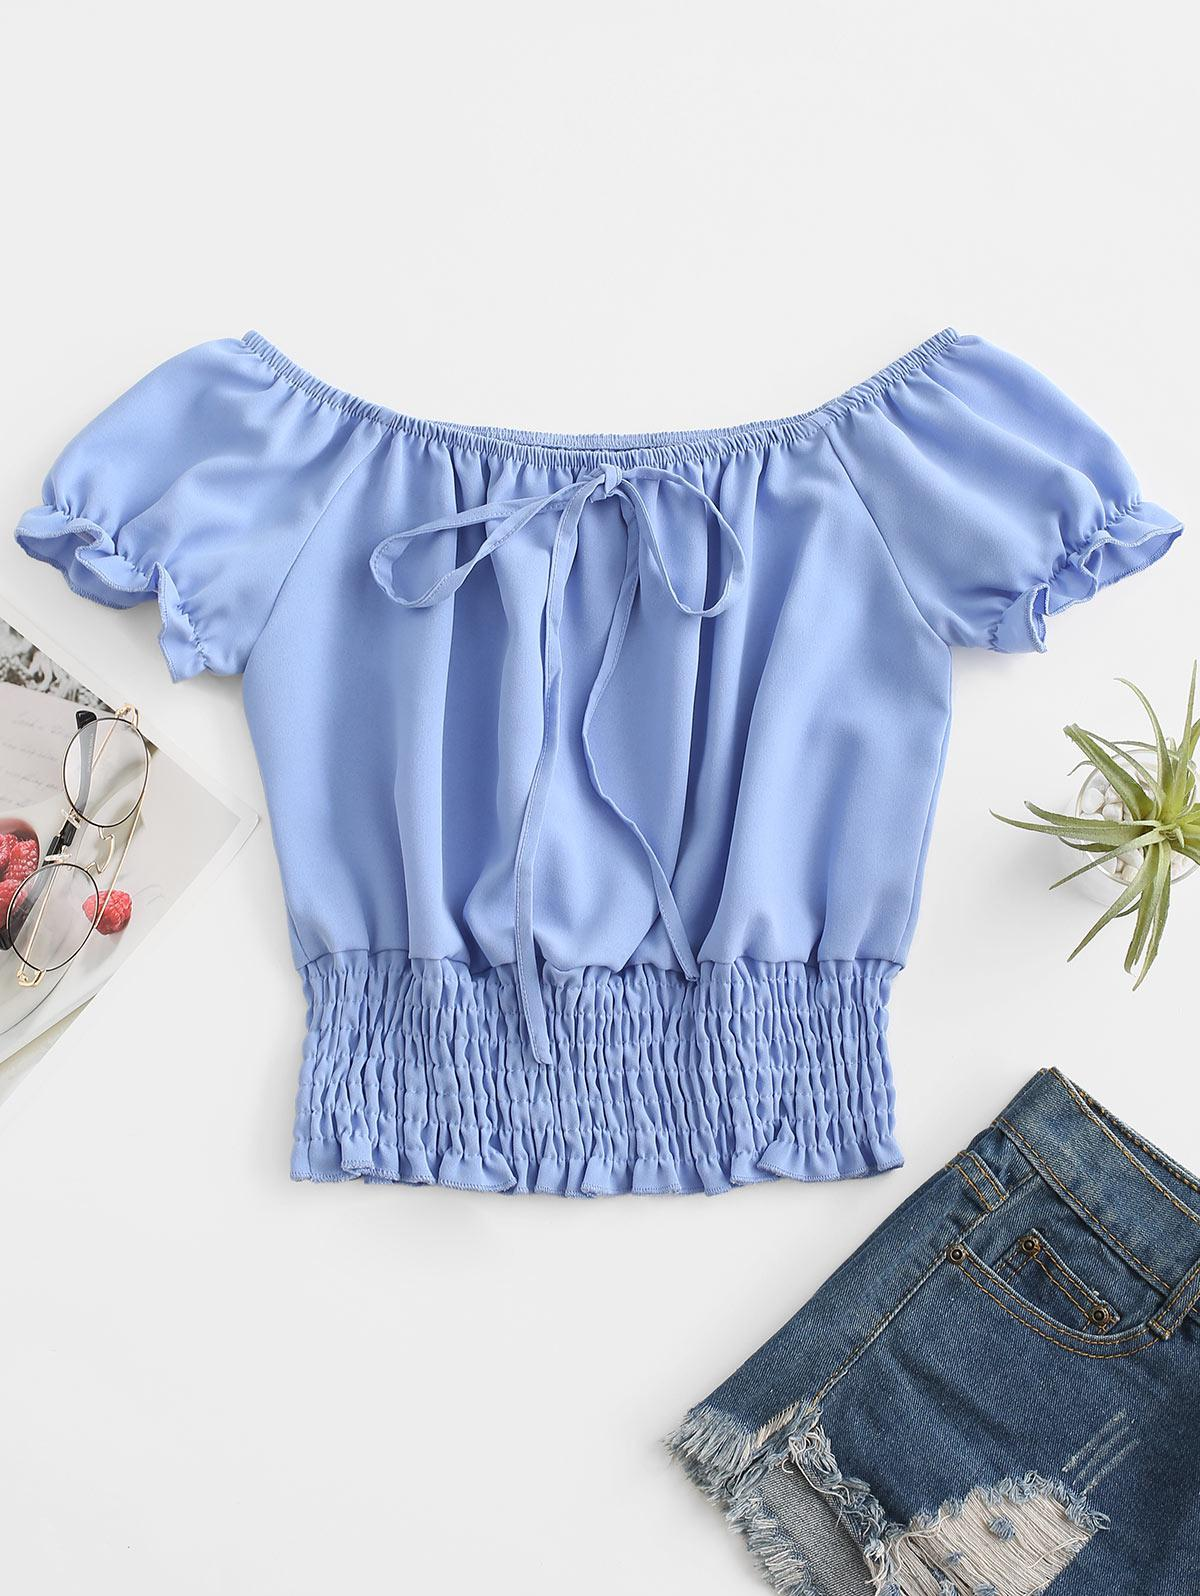 ZAFUL Puff Sleeve Smocked Tie Frilled Blouse